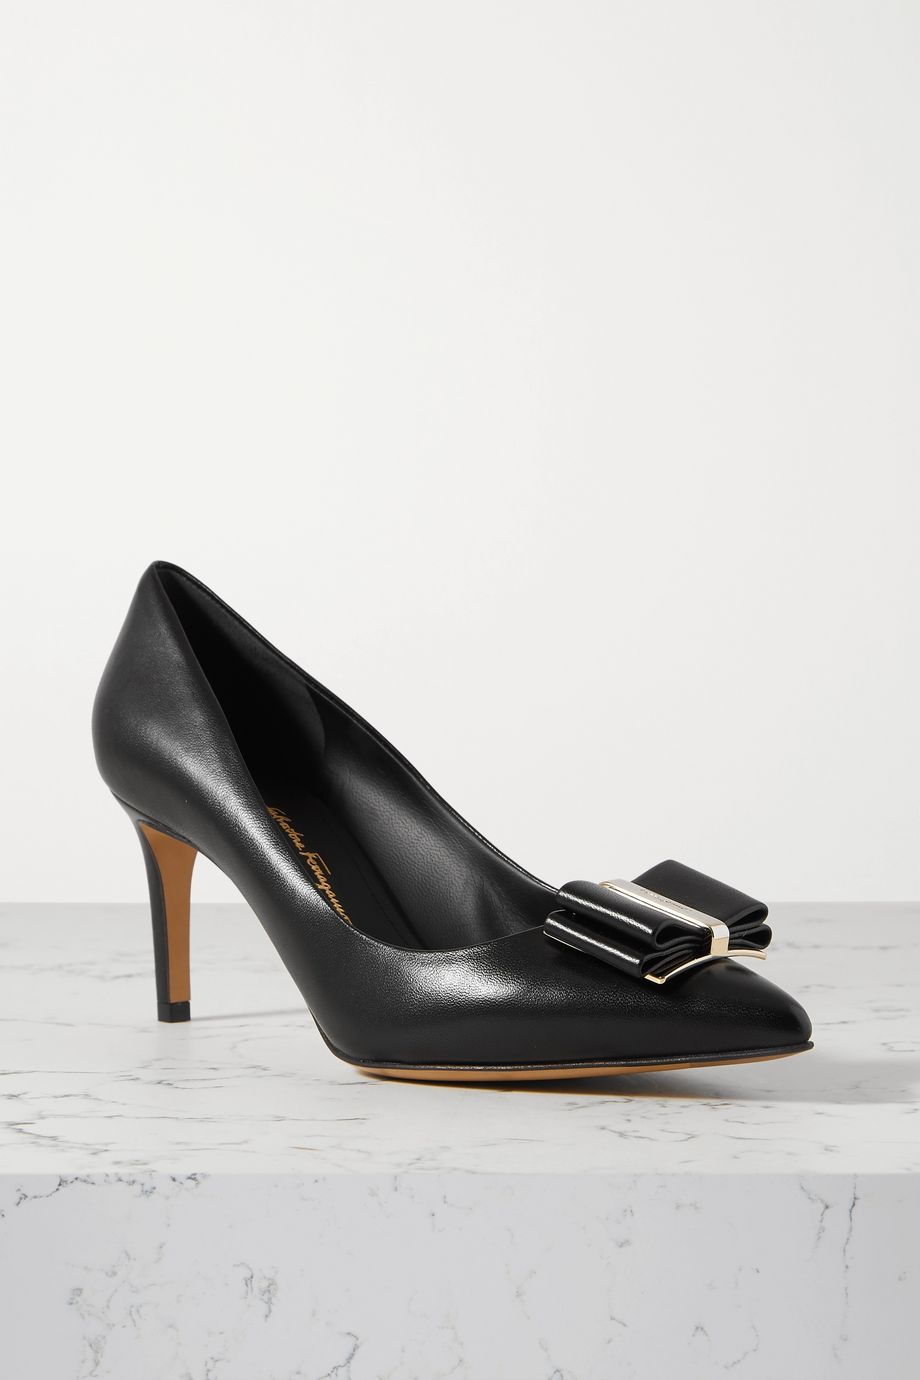 Salvatore Ferragamo Zeri bow-embellished leather pumps